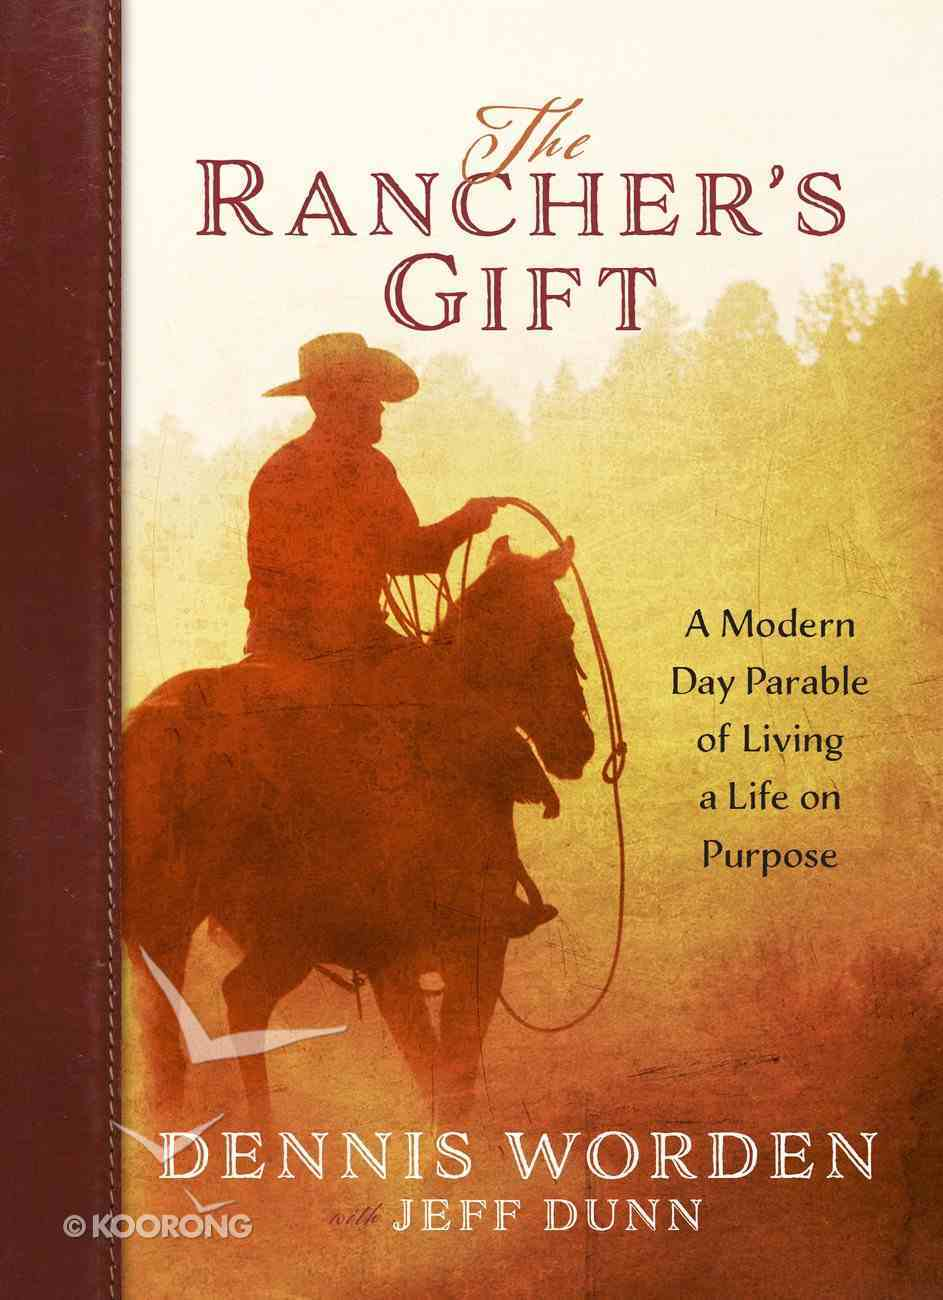 The Rancher's Gift: A Modern Day Parable of Living a Life on Purpose Hardback